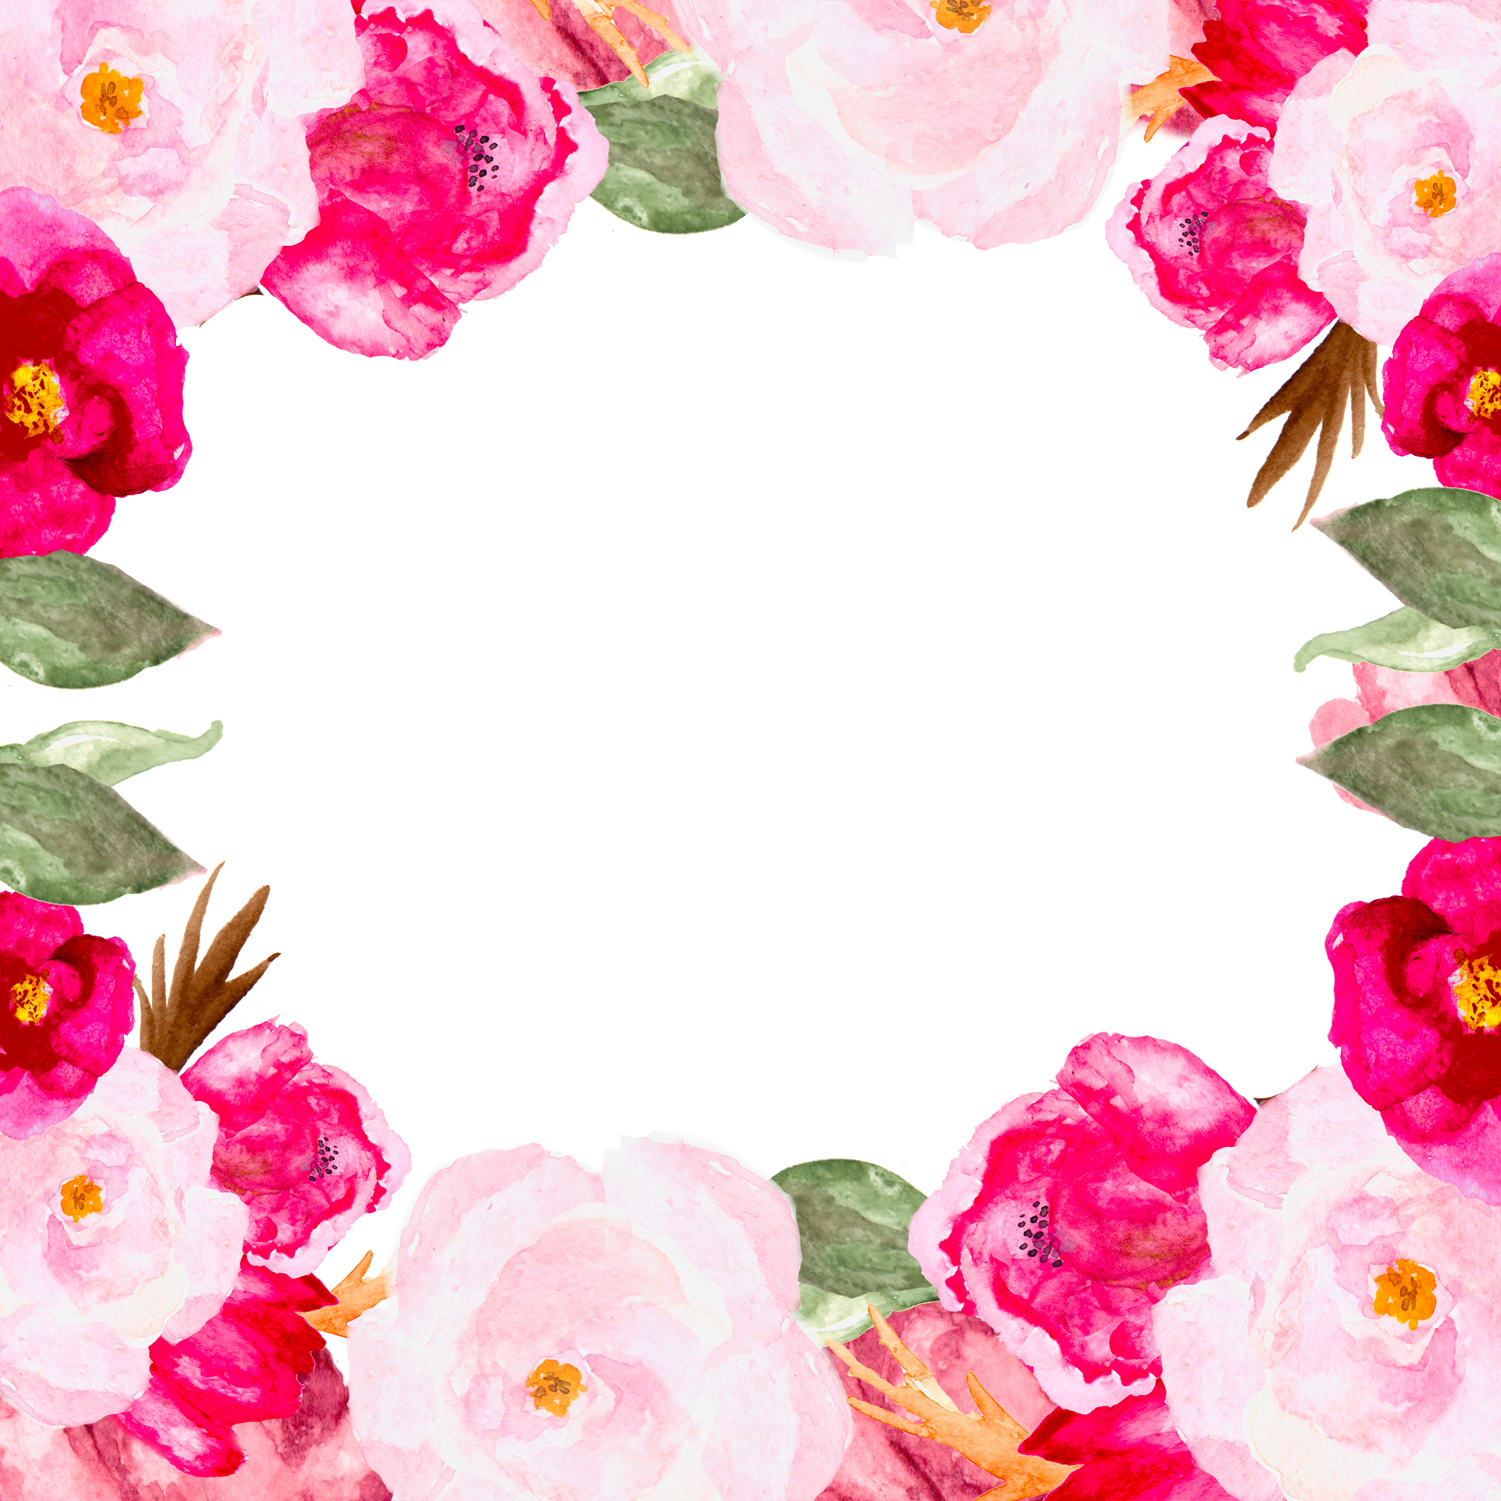 Watecolor Roses example image 1